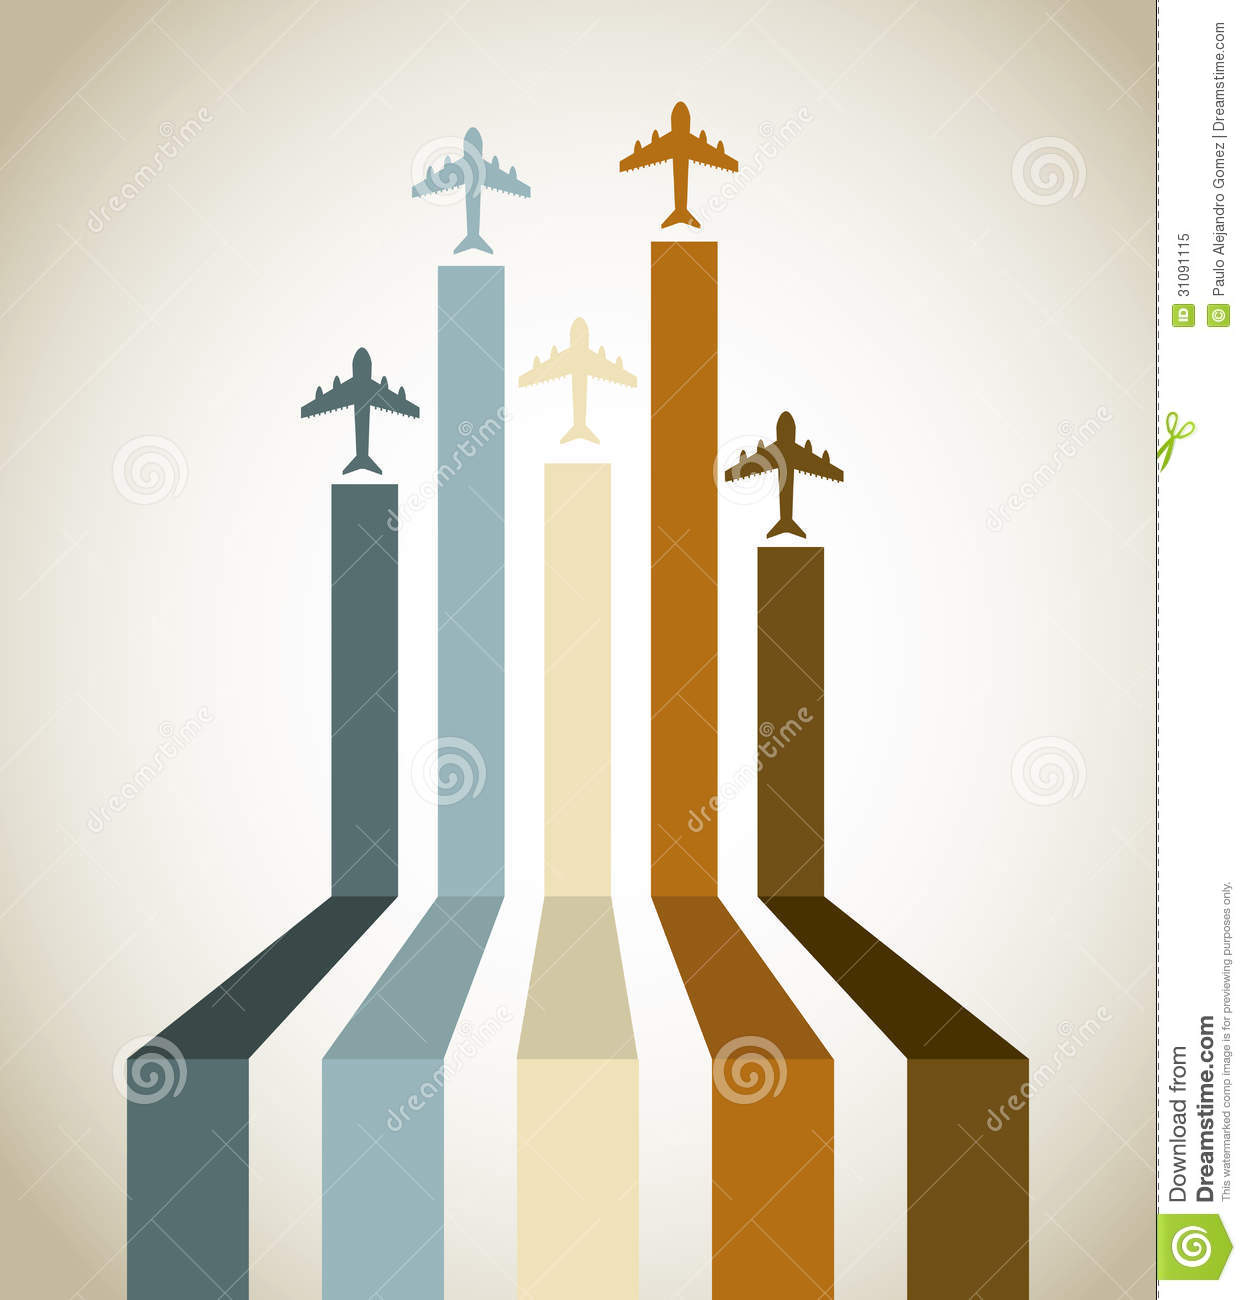 Free Vector Illustration Juniper: Aircraft Line Stock Vector. Illustration Of Colorful